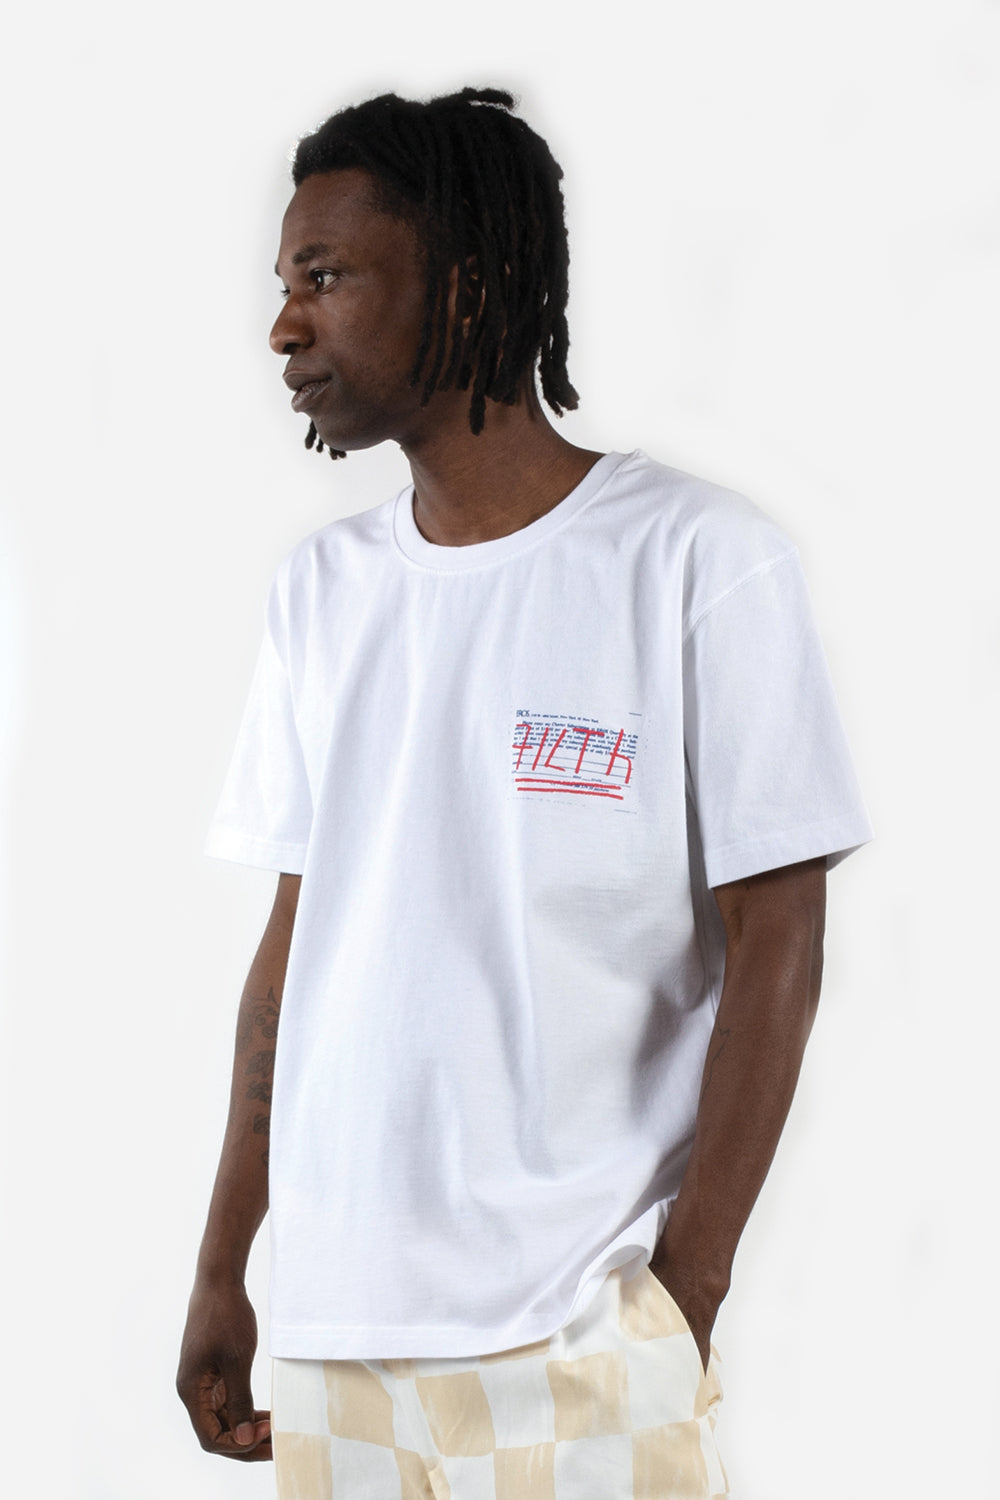 reception-clothing-ss-tee-fiflth-white-white